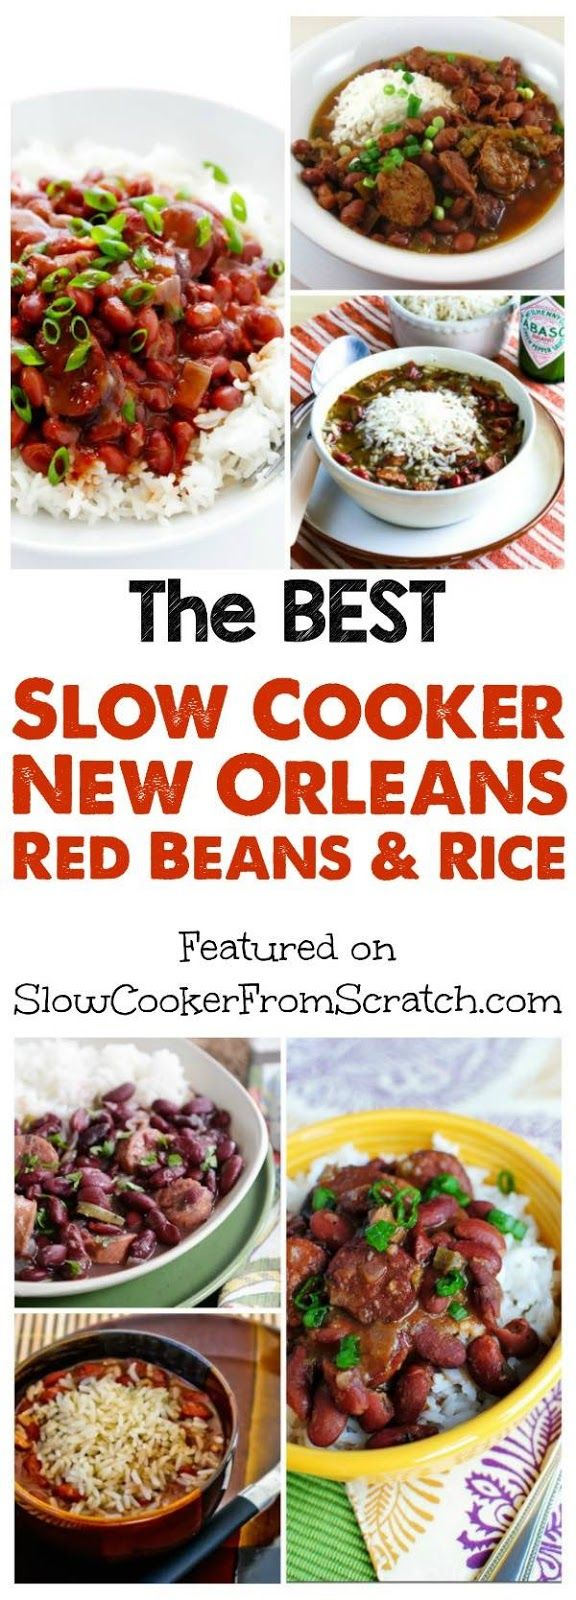 Here are The BEST Slow Cooker New Orleans Red Beans and Rice Recipes from food bloggers; this collection has red beans and rice recipes with ham, bacon, sausage, chicken sausage, and even some versions that are vegan! [featured on SlowCookerFromScratch.com]